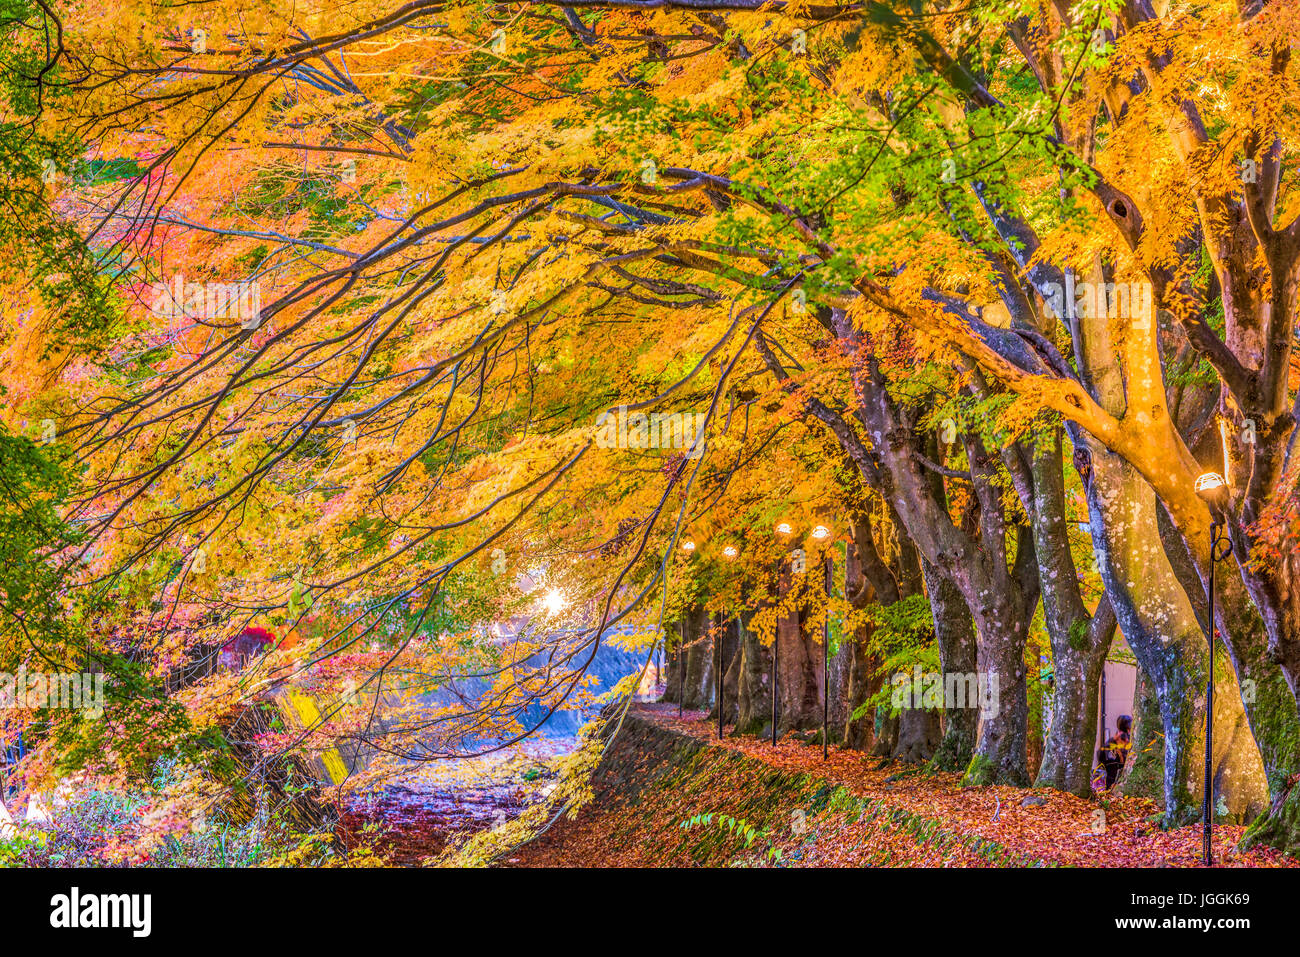 Maple Corridor near Kawaguchi Lake and Mt. Fuji, Japan during autumn. - Stock Image